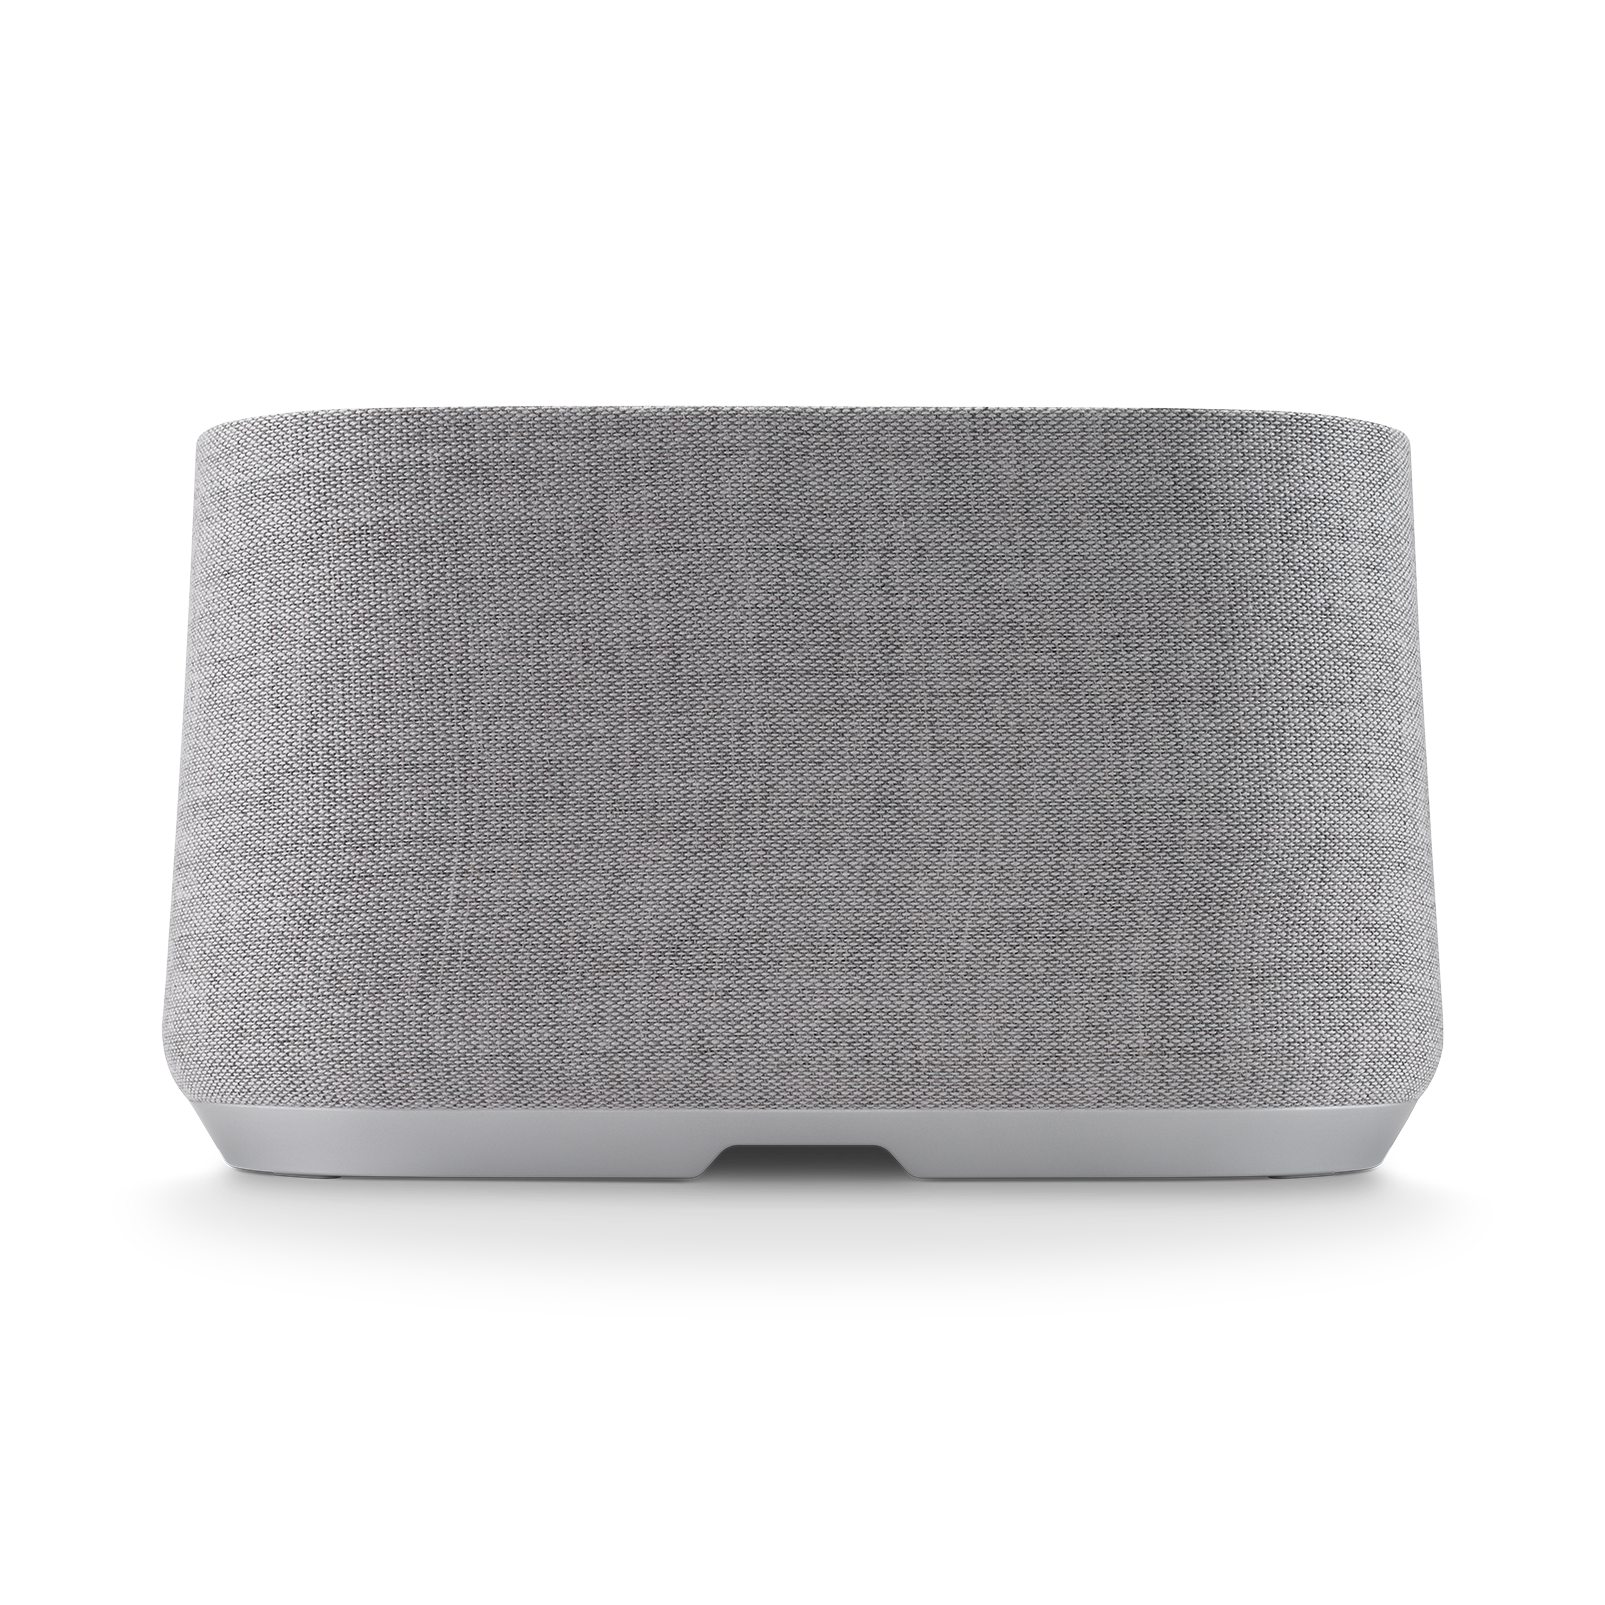 Harman Kardon Citation 300 - Grey - The medium-size smart home speaker with award winning design - Back